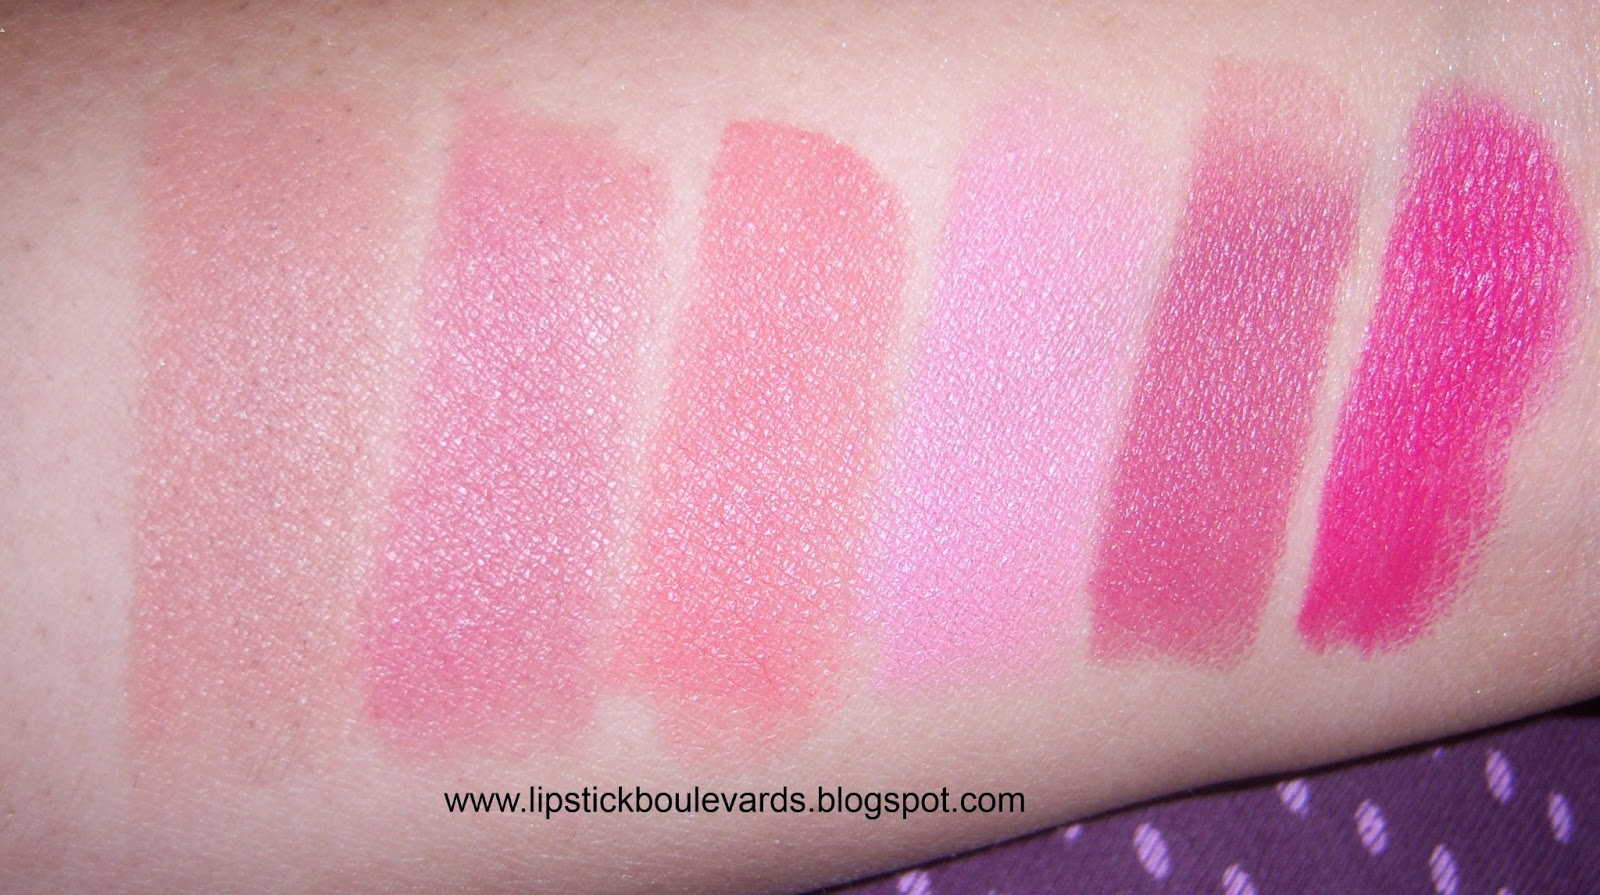 Lipstick Boulevards Flower Beauty Cosmetics by Drew Barrymore Swatches